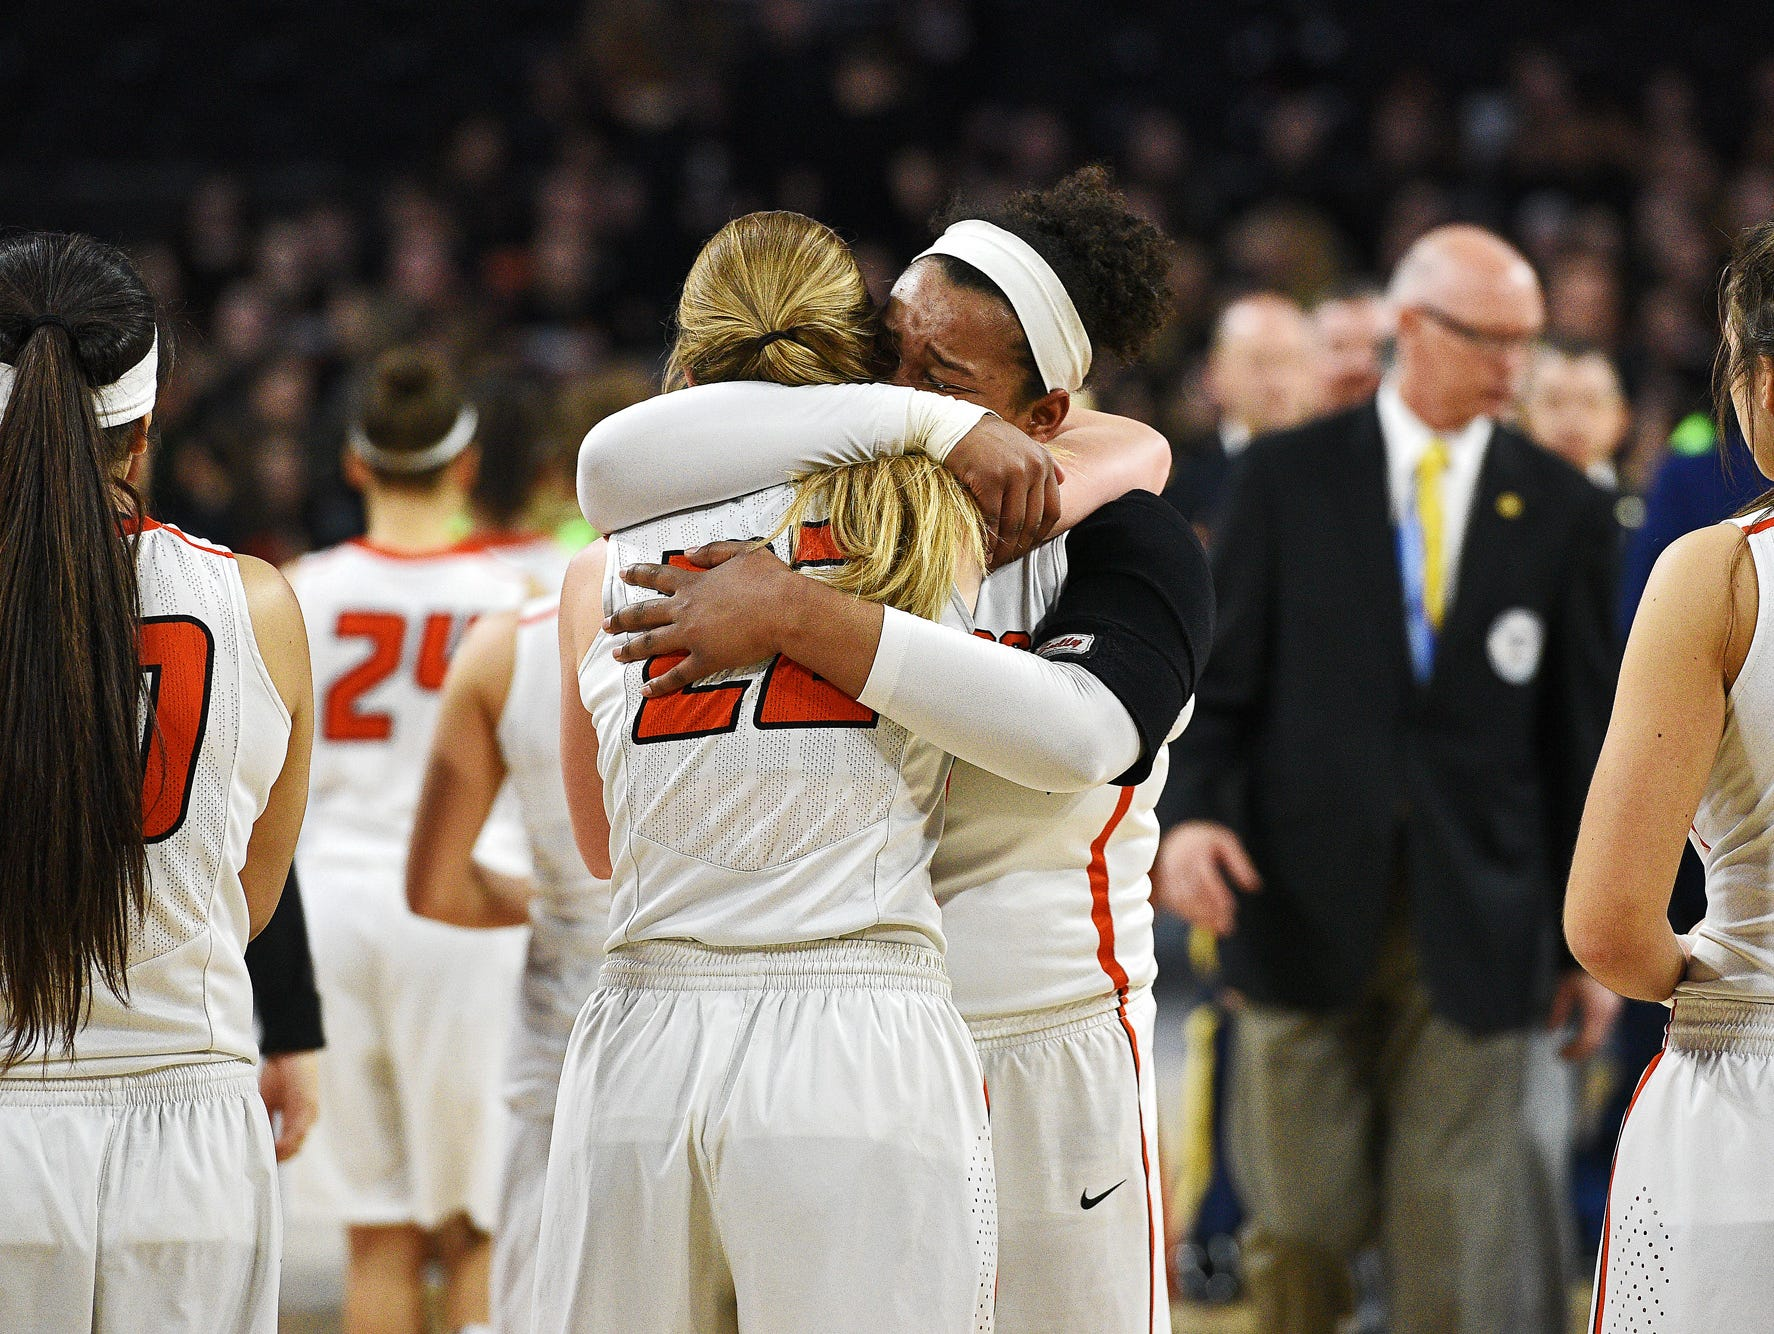 Washington's Anna Goodhope (22) and Sydney Arrington (54) hug after their 75 to 64 loss to Aberdeen Central in the South Dakota Class AA State Girls Basketball Tournament championship game Saturday, March 19, 2016, at the Denny Sanford Premier Center in Sioux Falls.